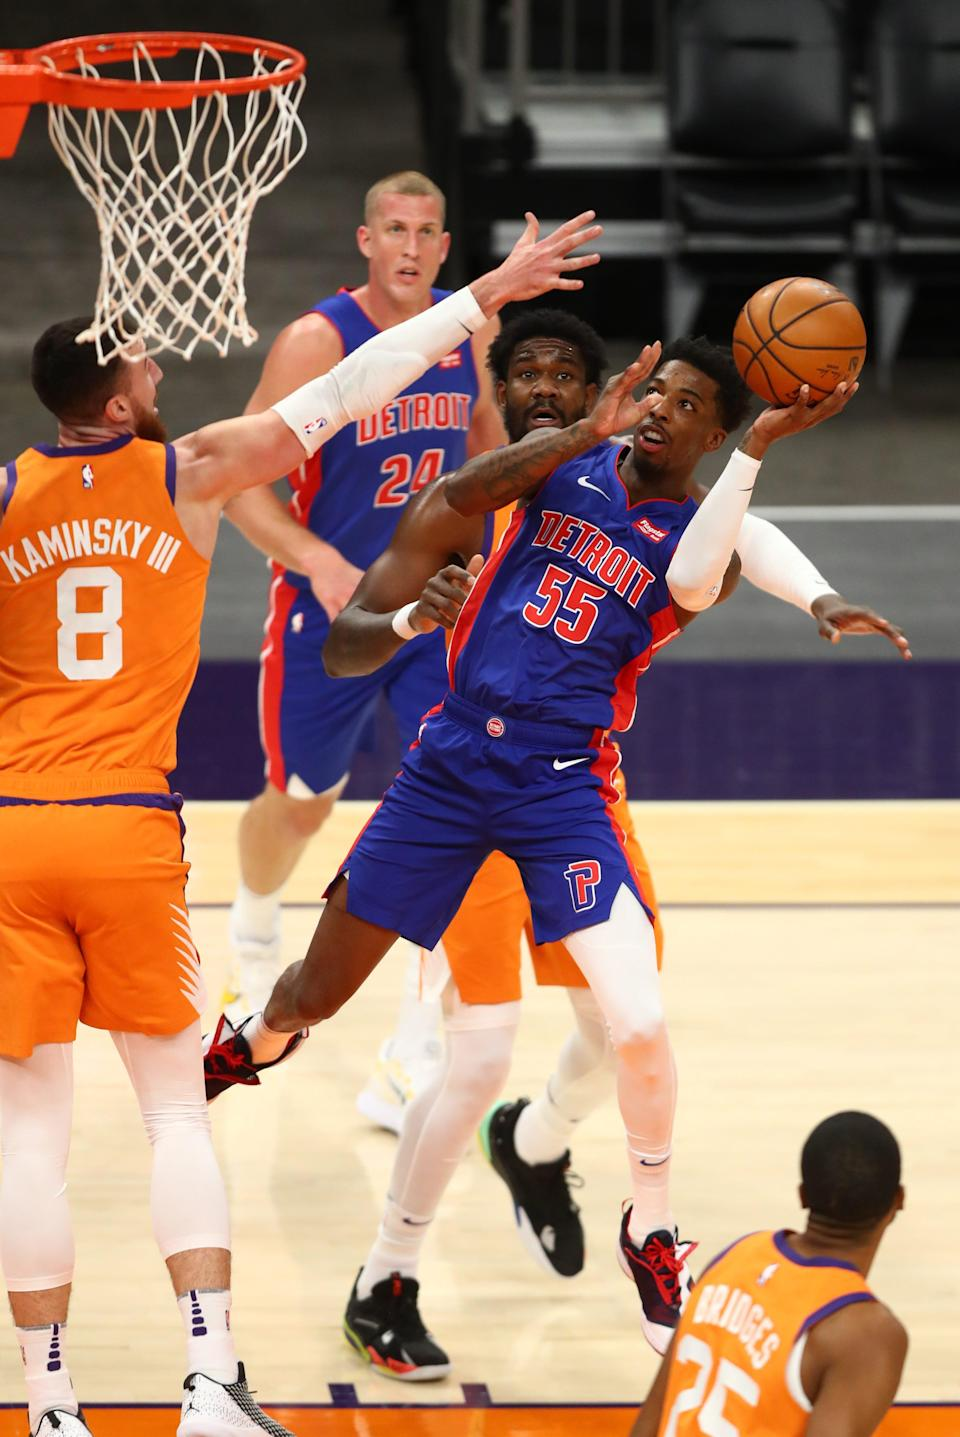 Detroit Pistons guard Delon Wright drives to the basket against the Phoenix Suns in the first half at Phoenix Suns Arena, Feb. 5, 2021.